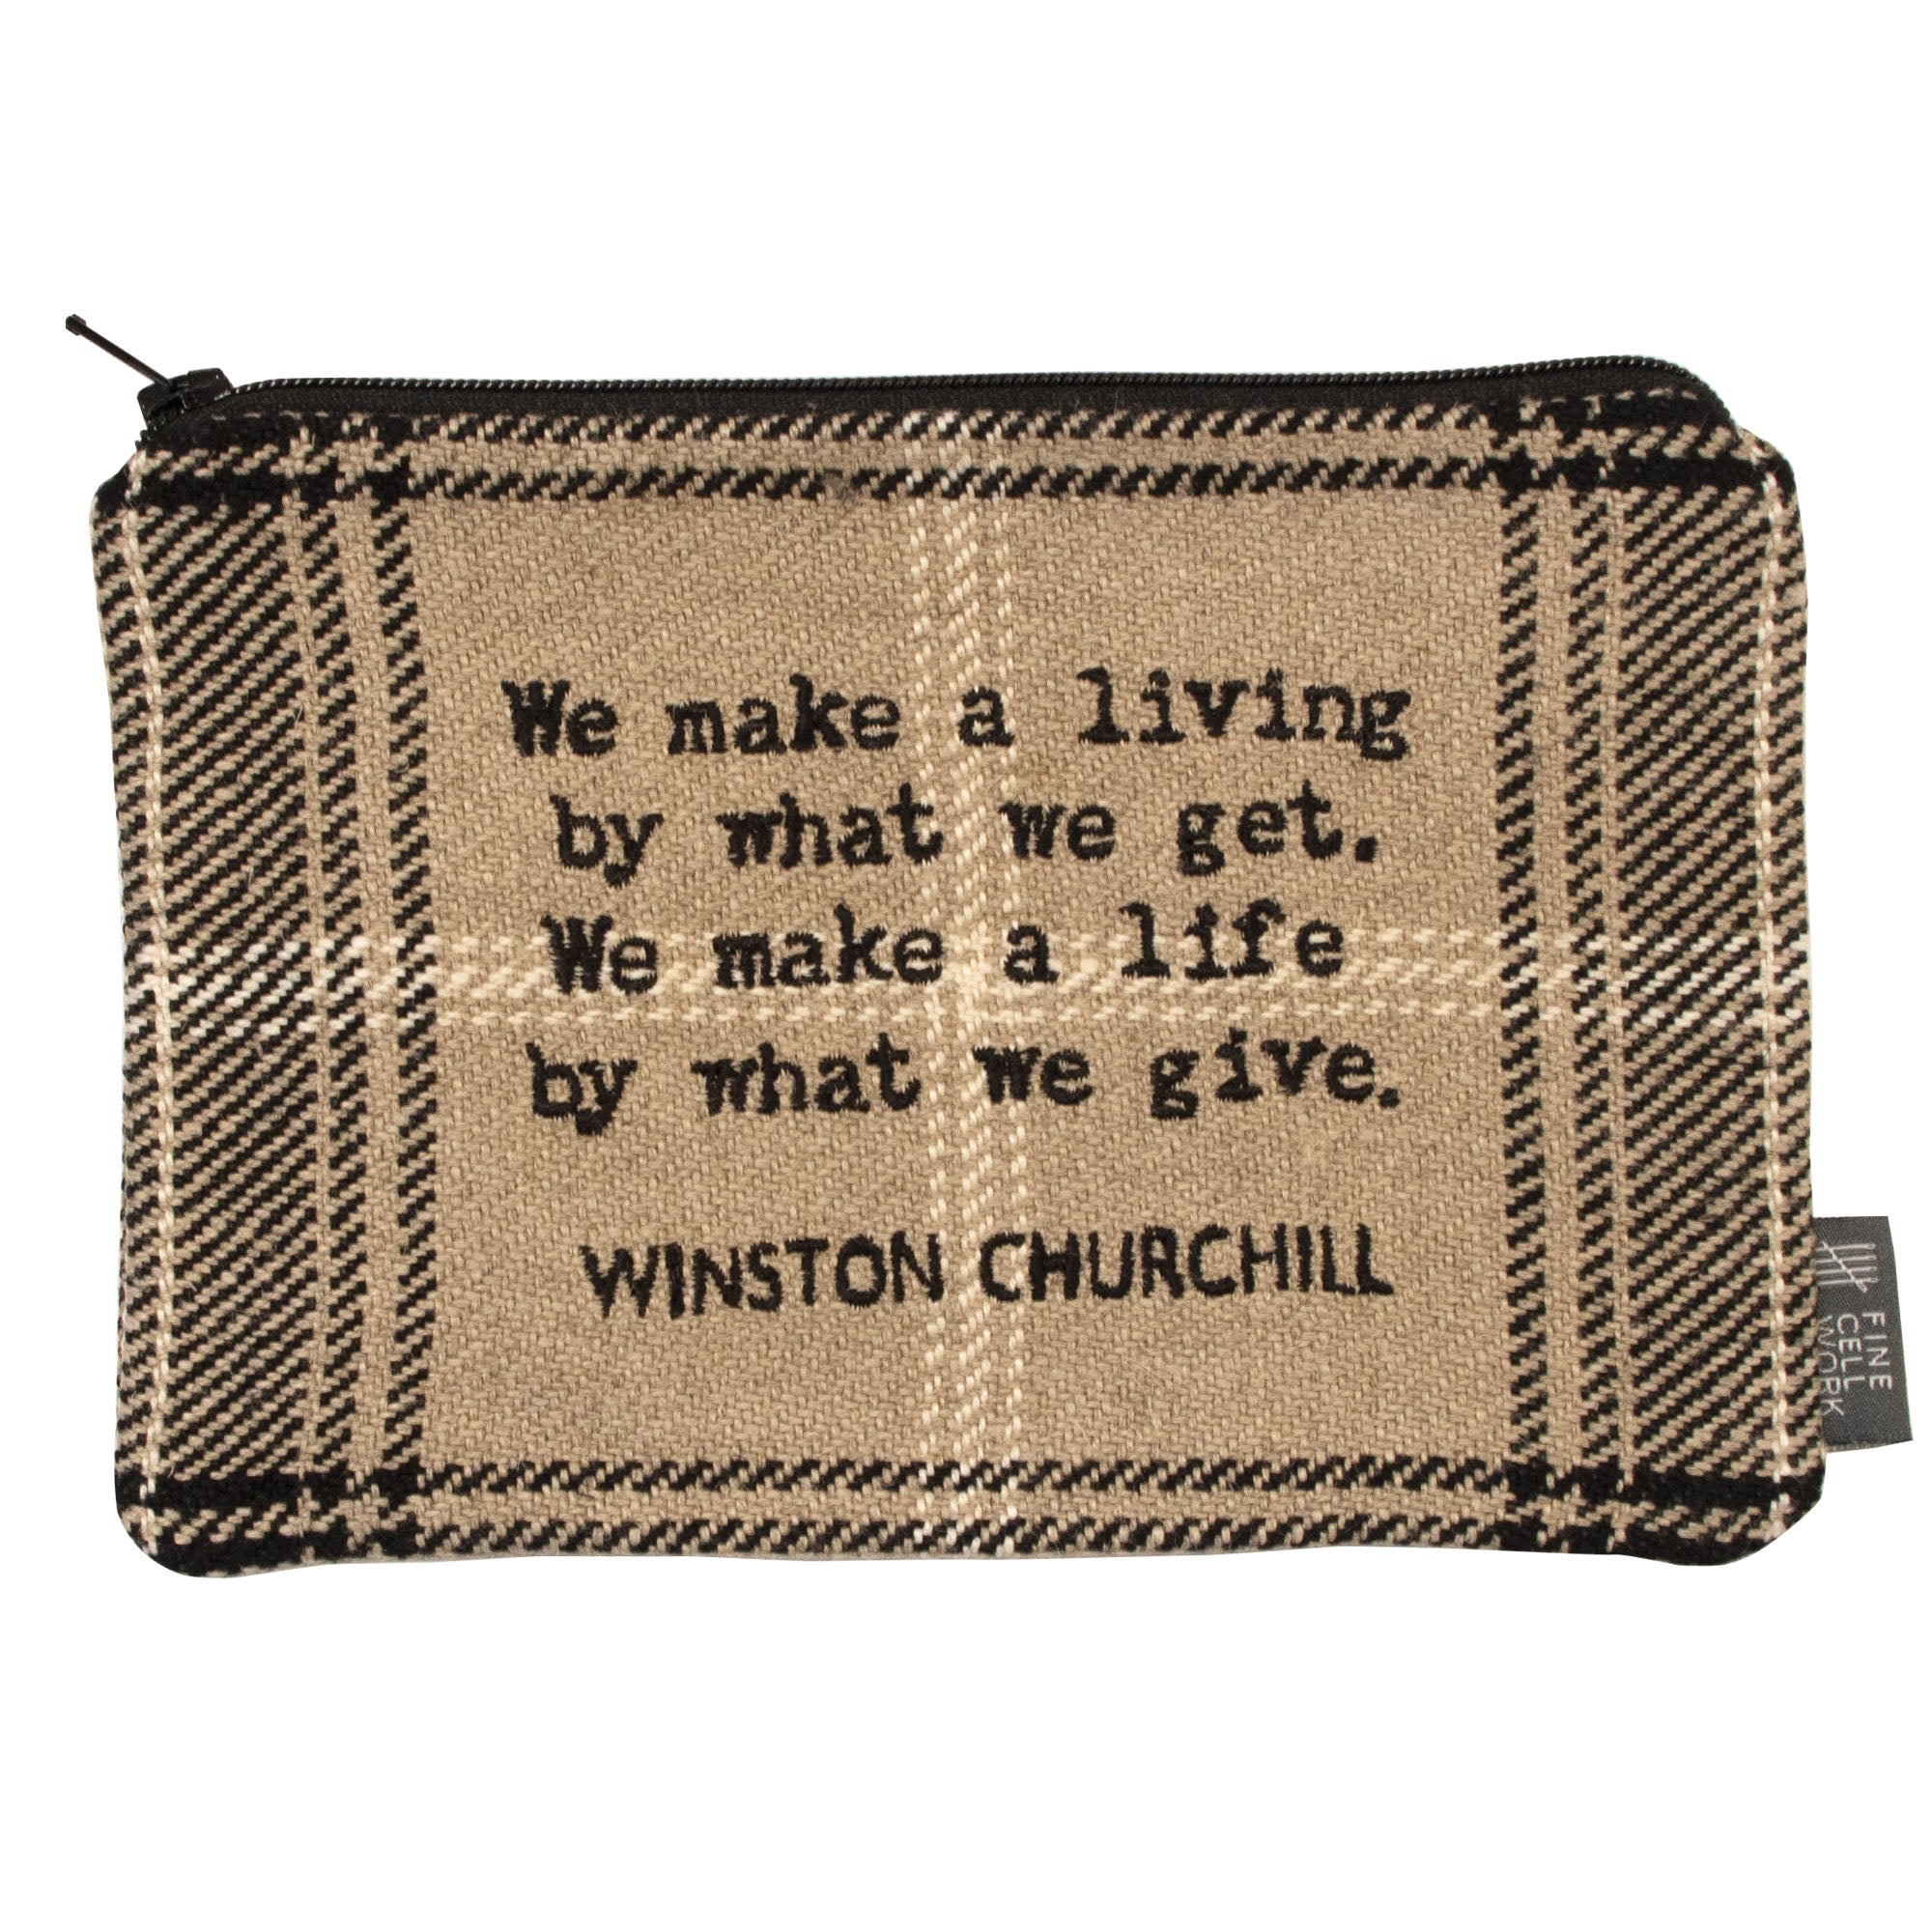 Churchill Quote Zip Wallet Black